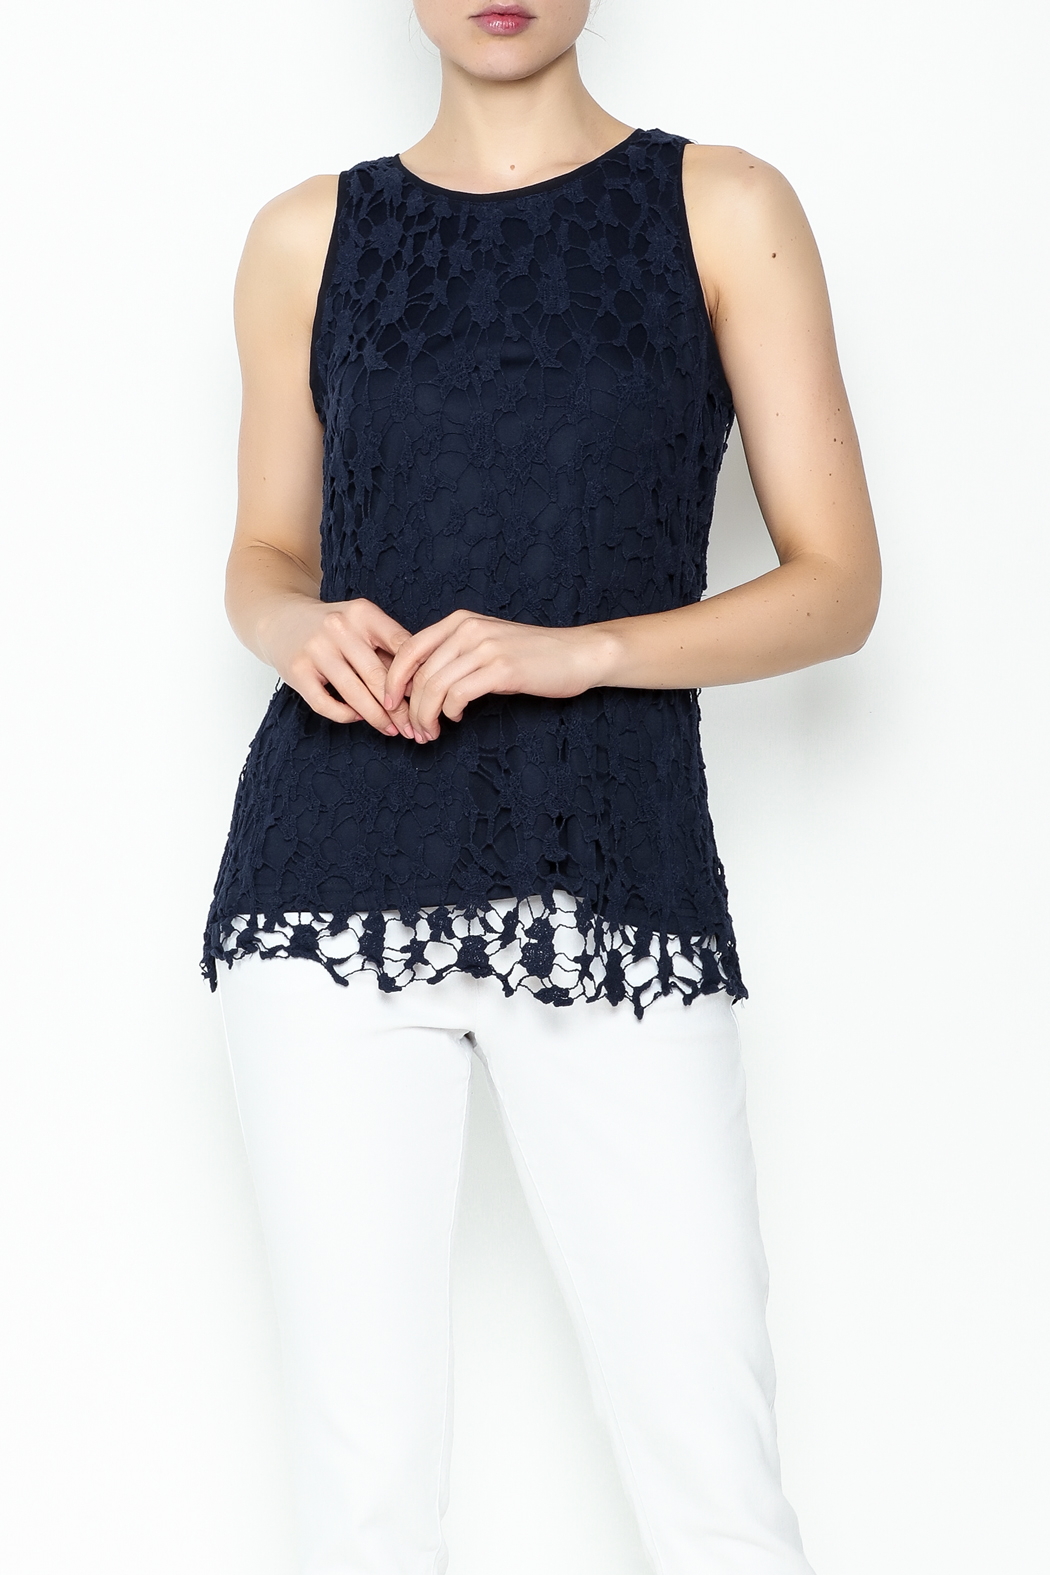 Keren Hart Lace Sleeveless Top - Front Cropped Image